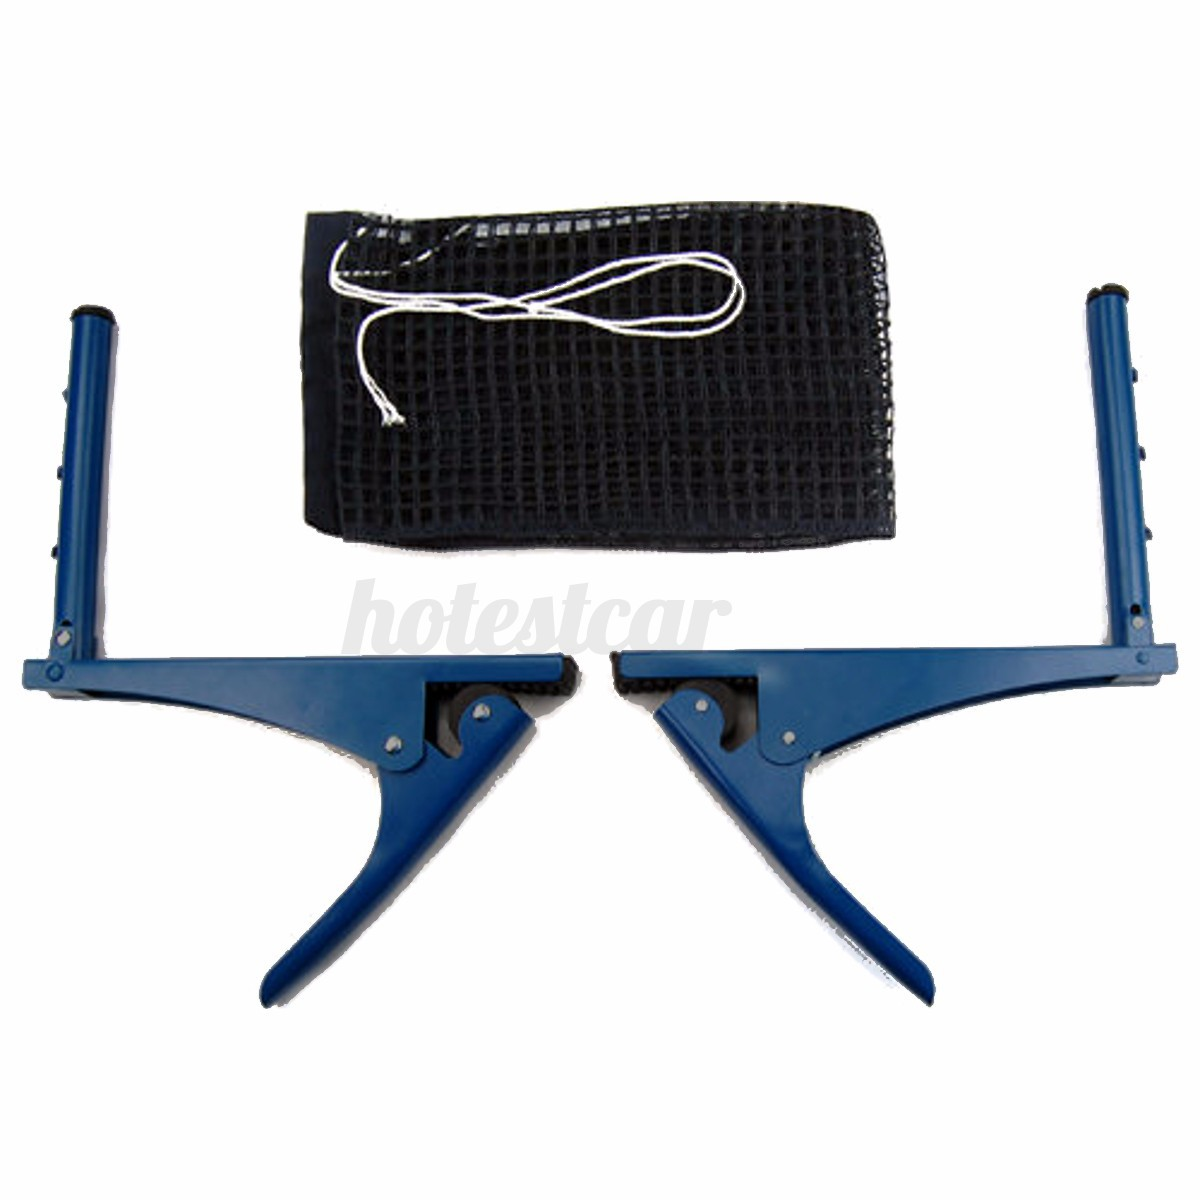 Table-Tennis-Ping-Pong-Net-Indoor-Sports-Game-Post-Clamp-Stand-Set thumbnail 2